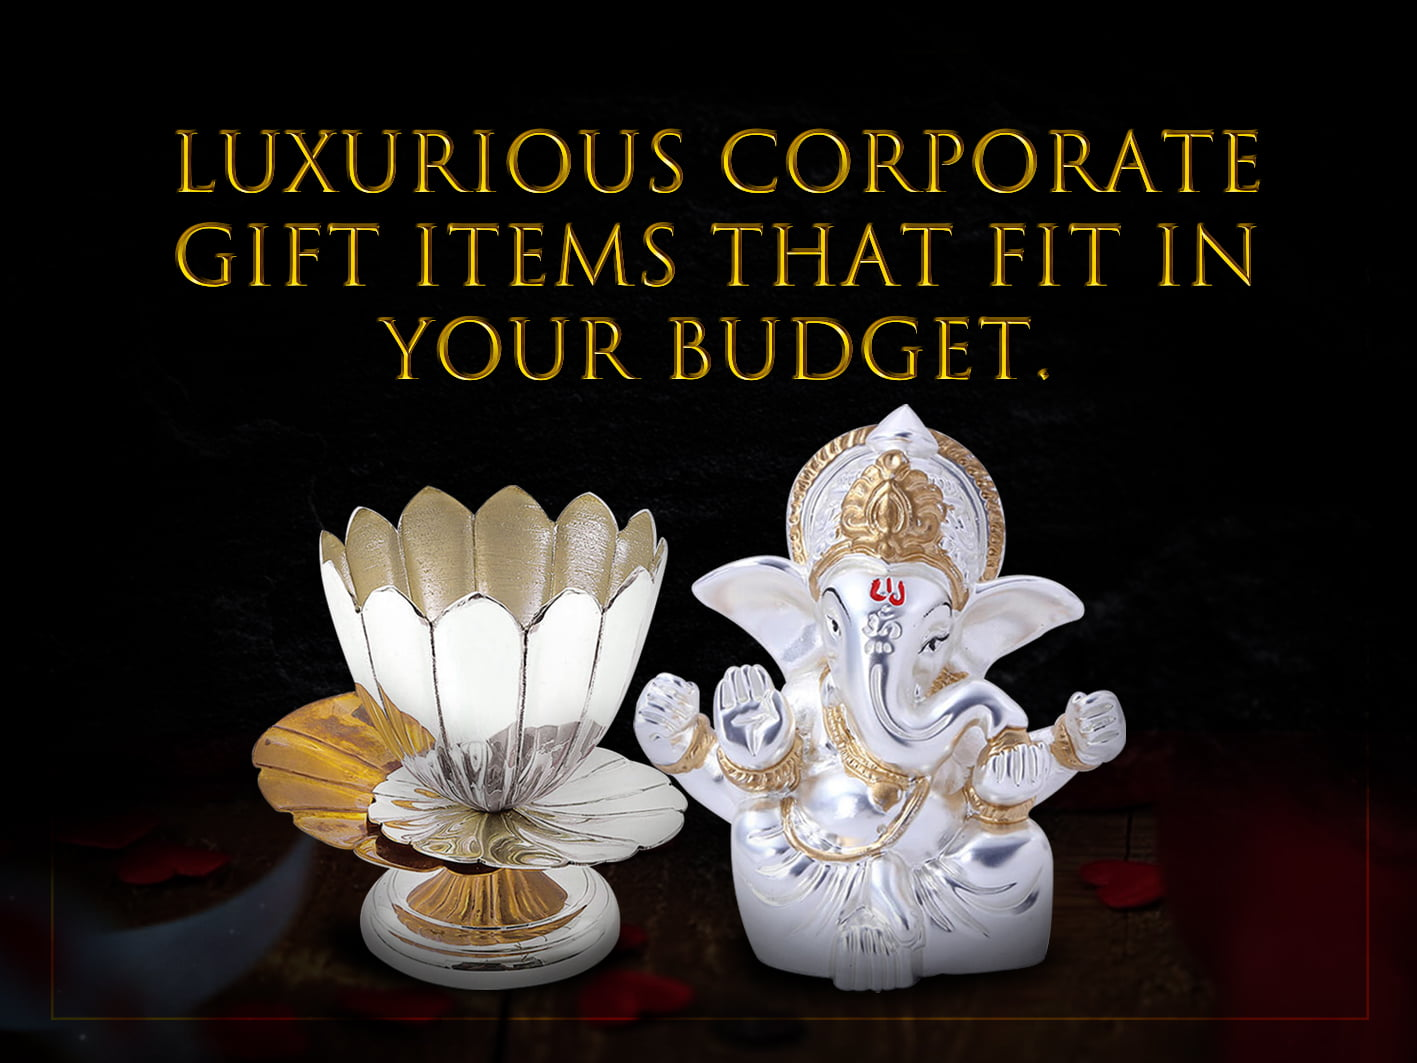 Luxurious Corporate Gift